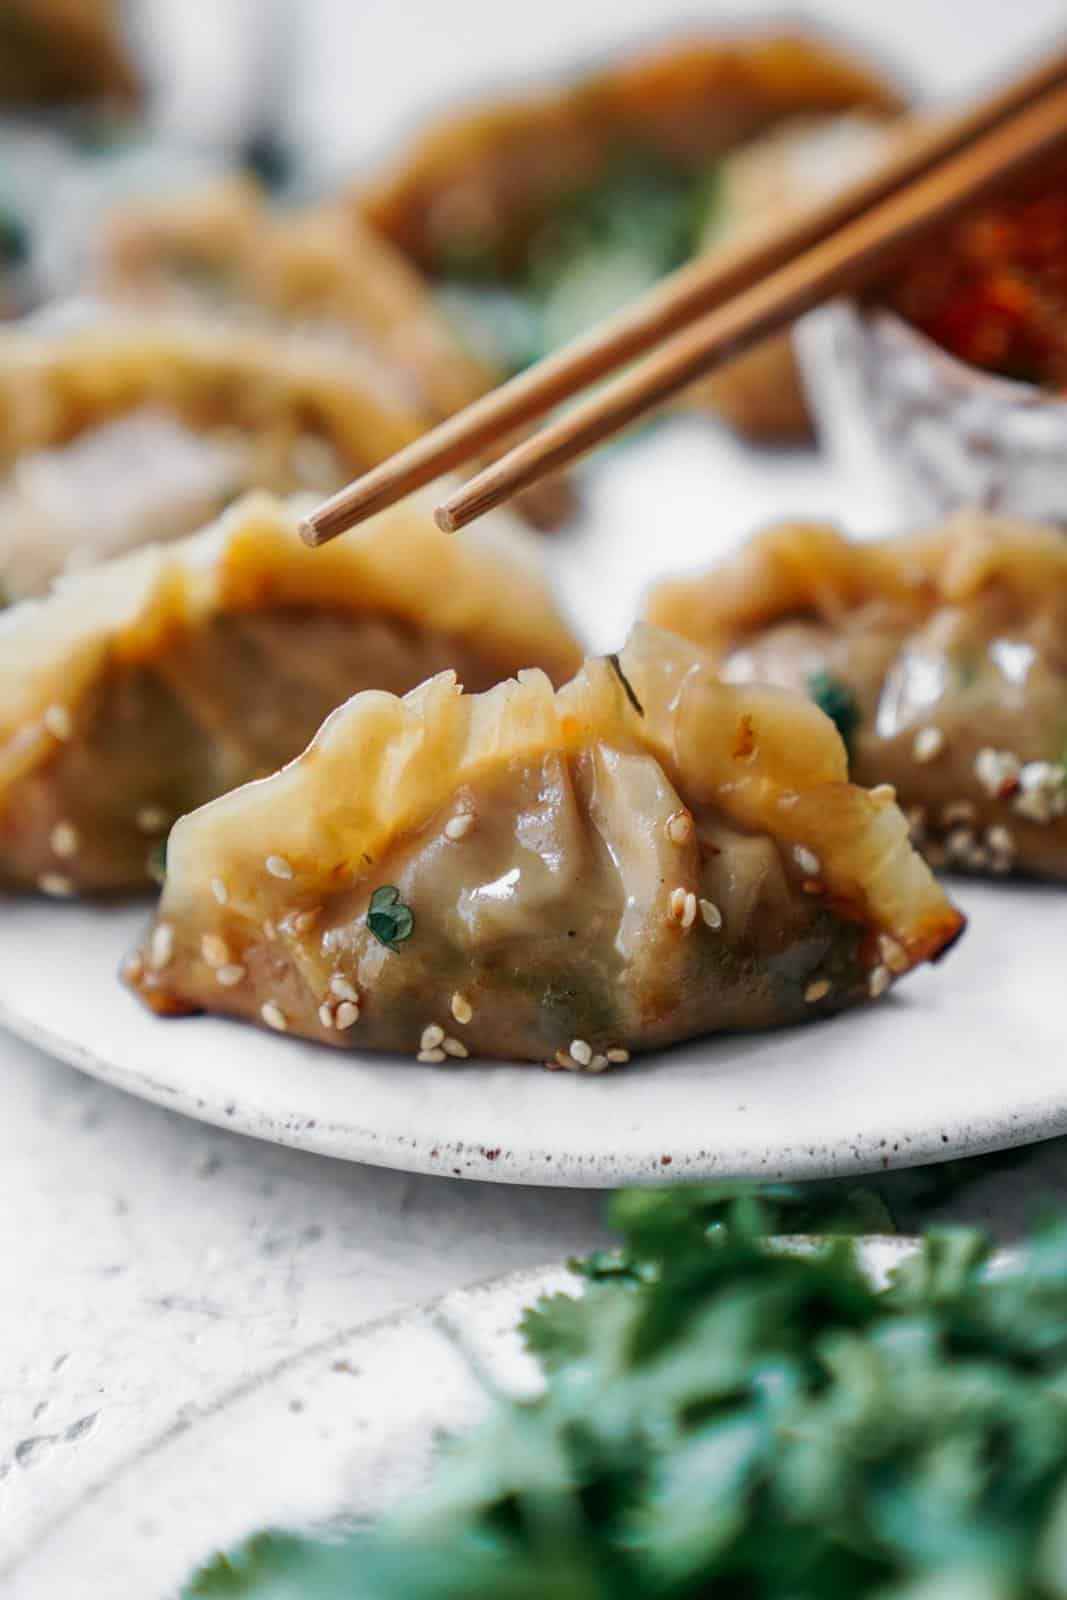 Close-up of vegan dumplings on a plate with chopsticks reaching for them.